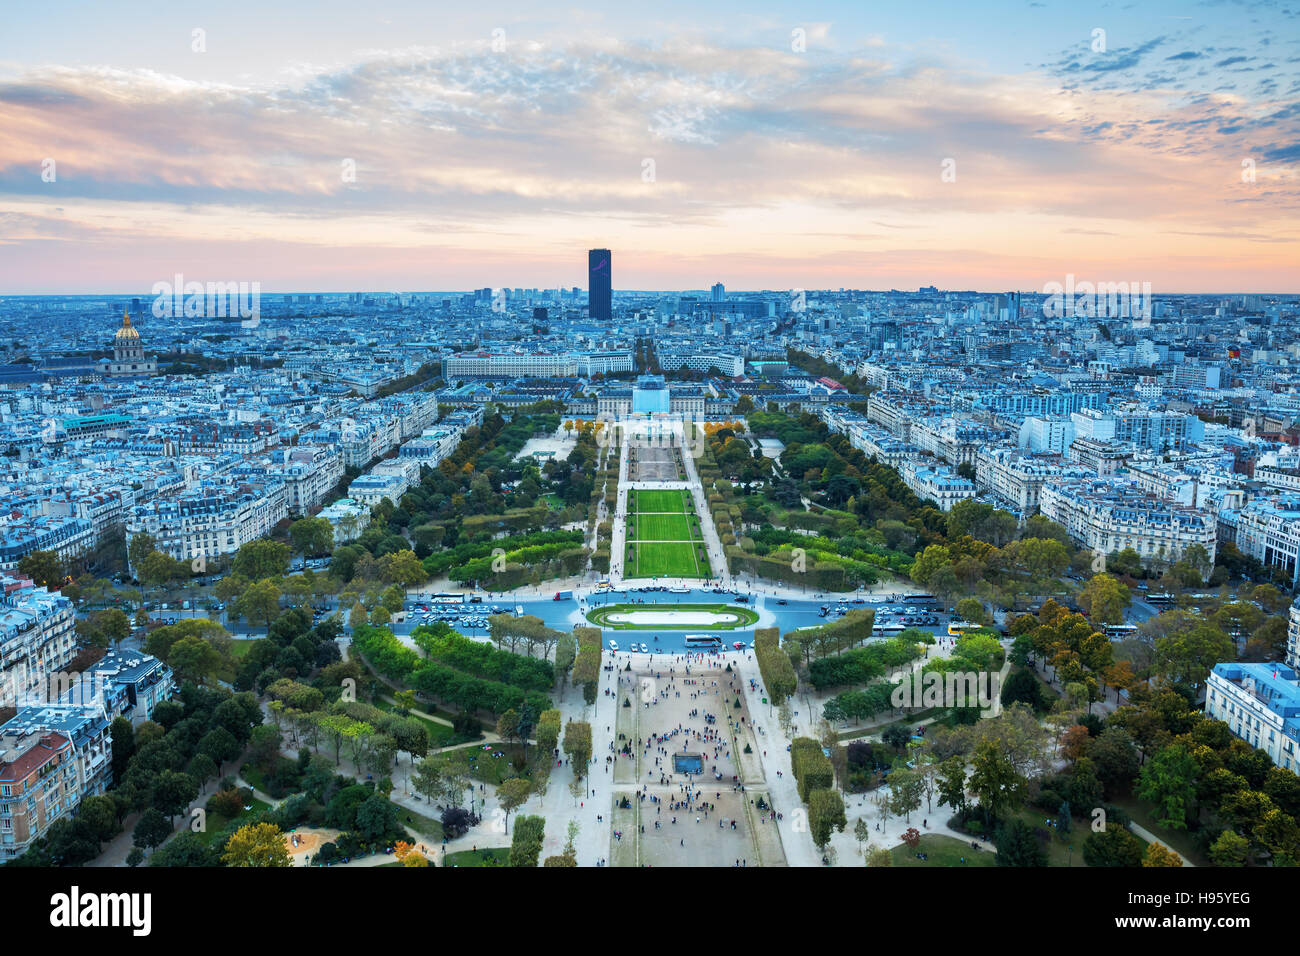 view from Eiffel Tower over Champs de Mars at dusk, Paris, France Stock Photo